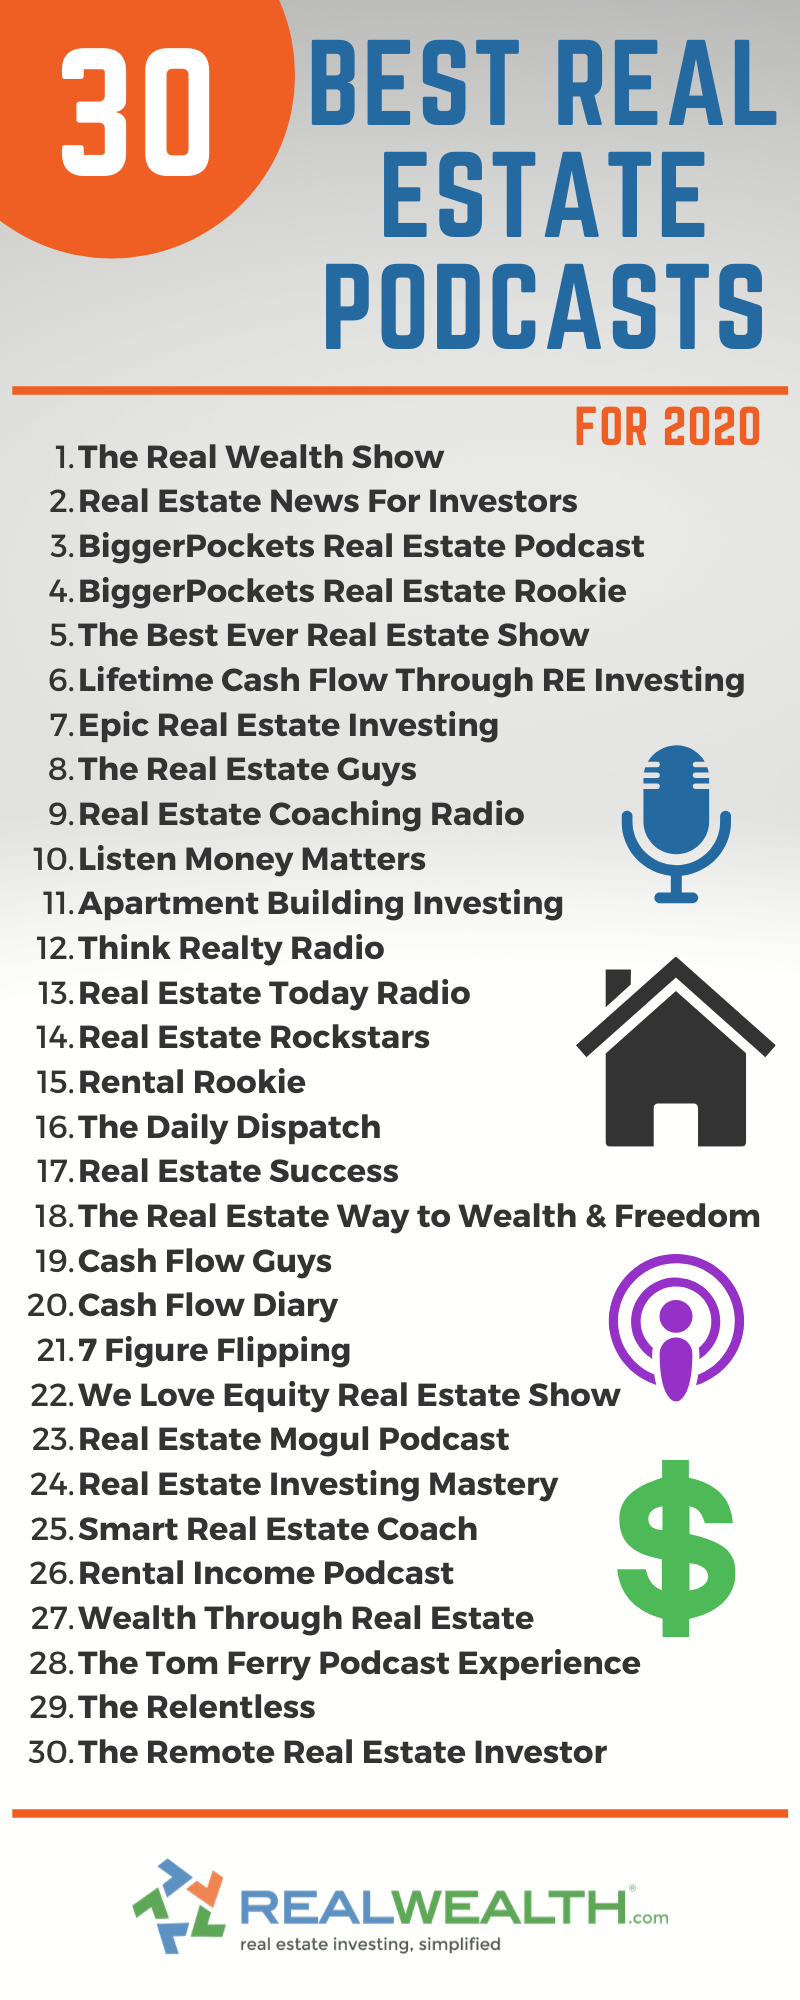 30 Of The Best Real Estate Podcasts For 2020 Free Investor Guide Real Estate Coaching Real Estate Podcasts